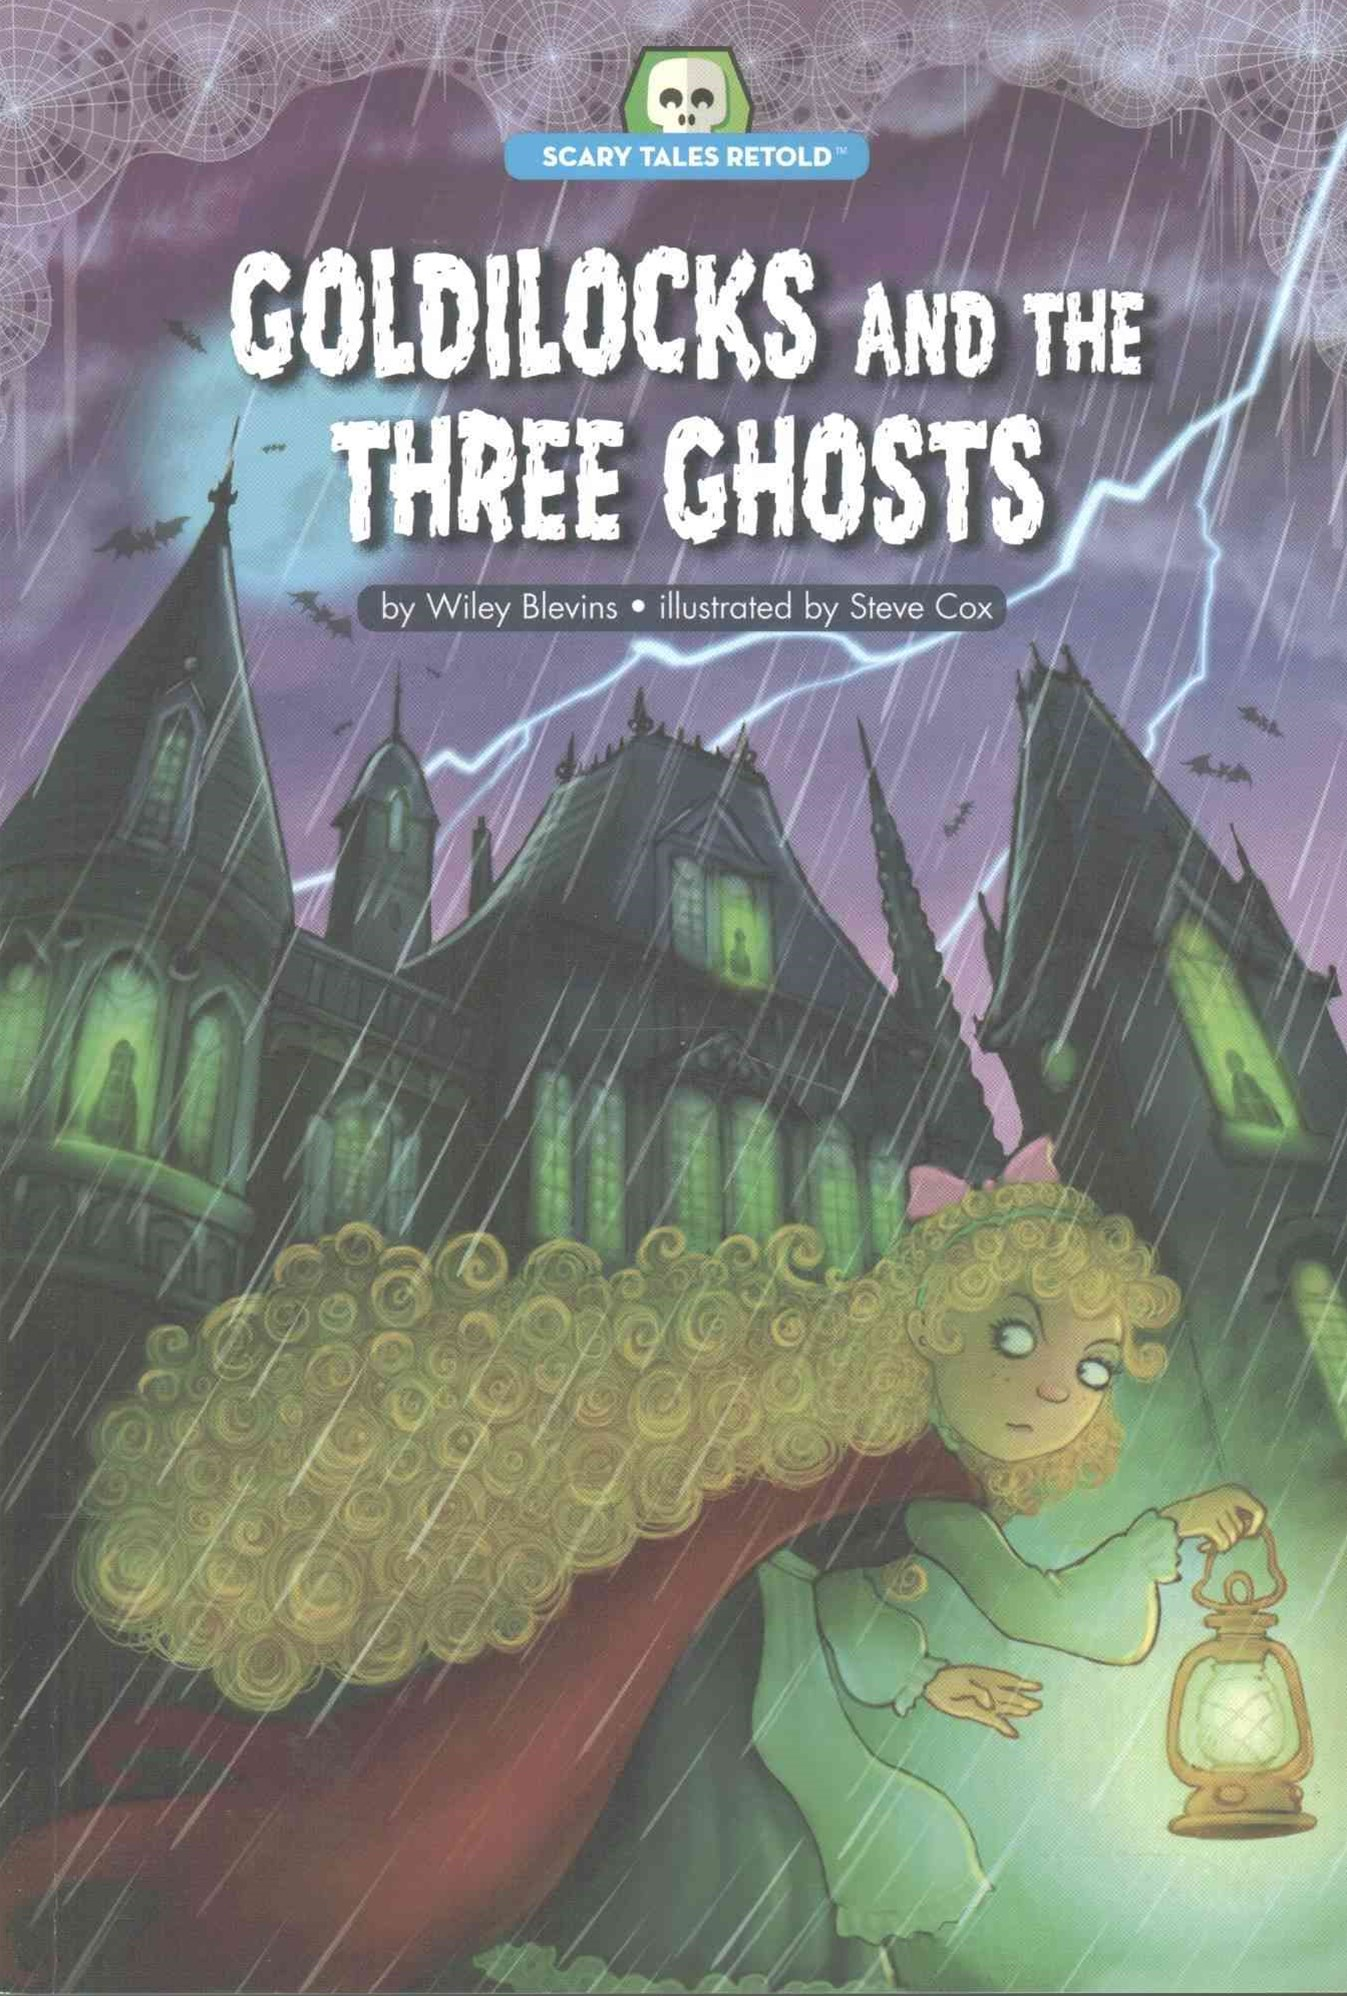 Goldilocks and the Three Ghosts